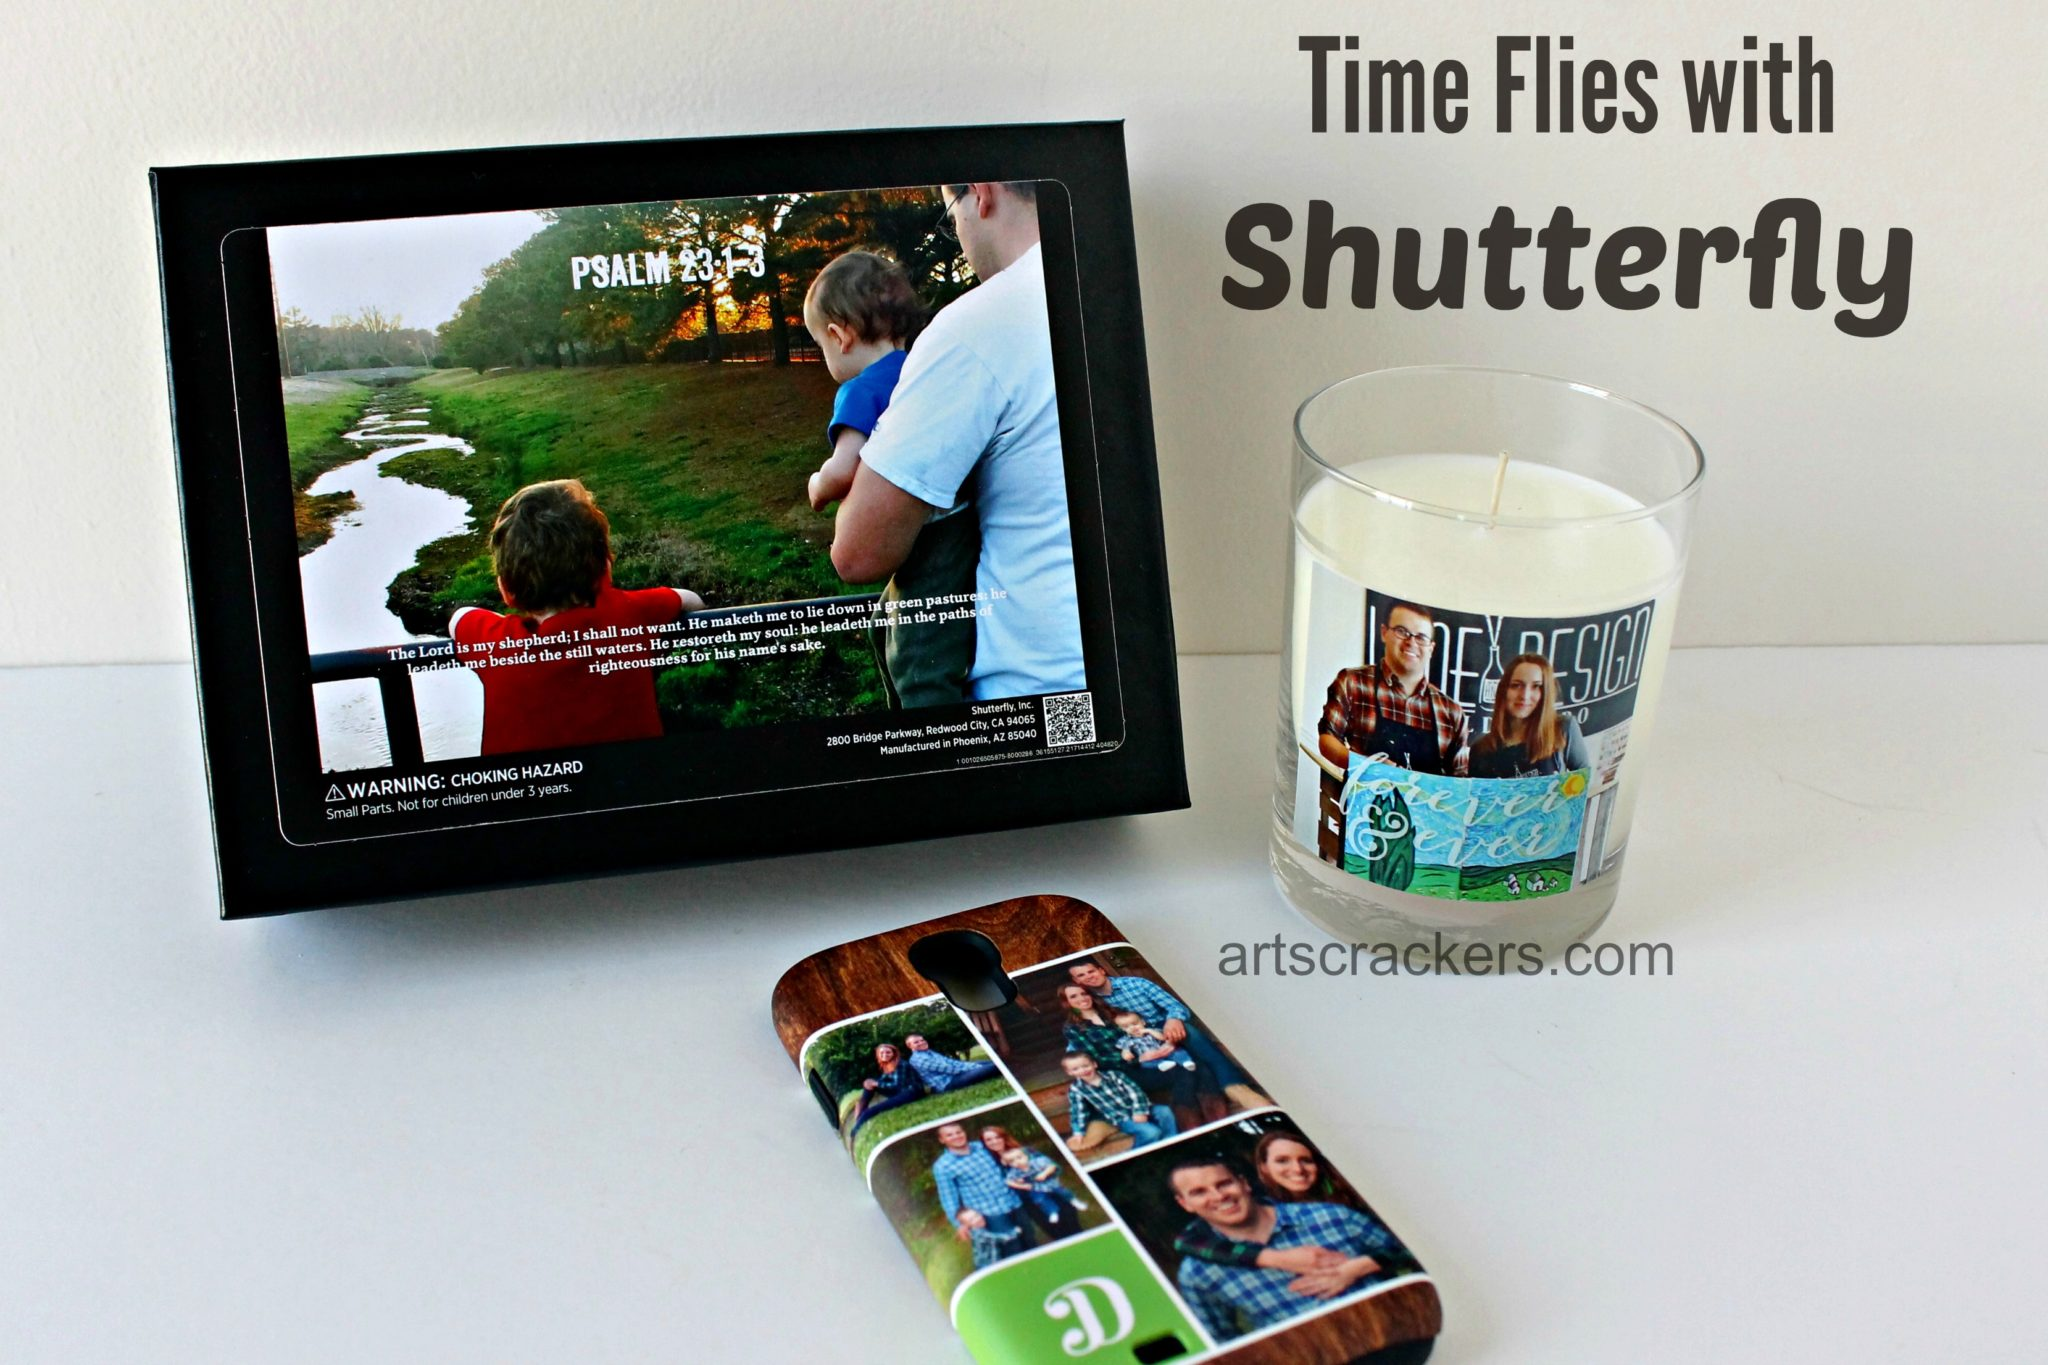 Times Flies with Shutterfly. Click the picture to read the review.